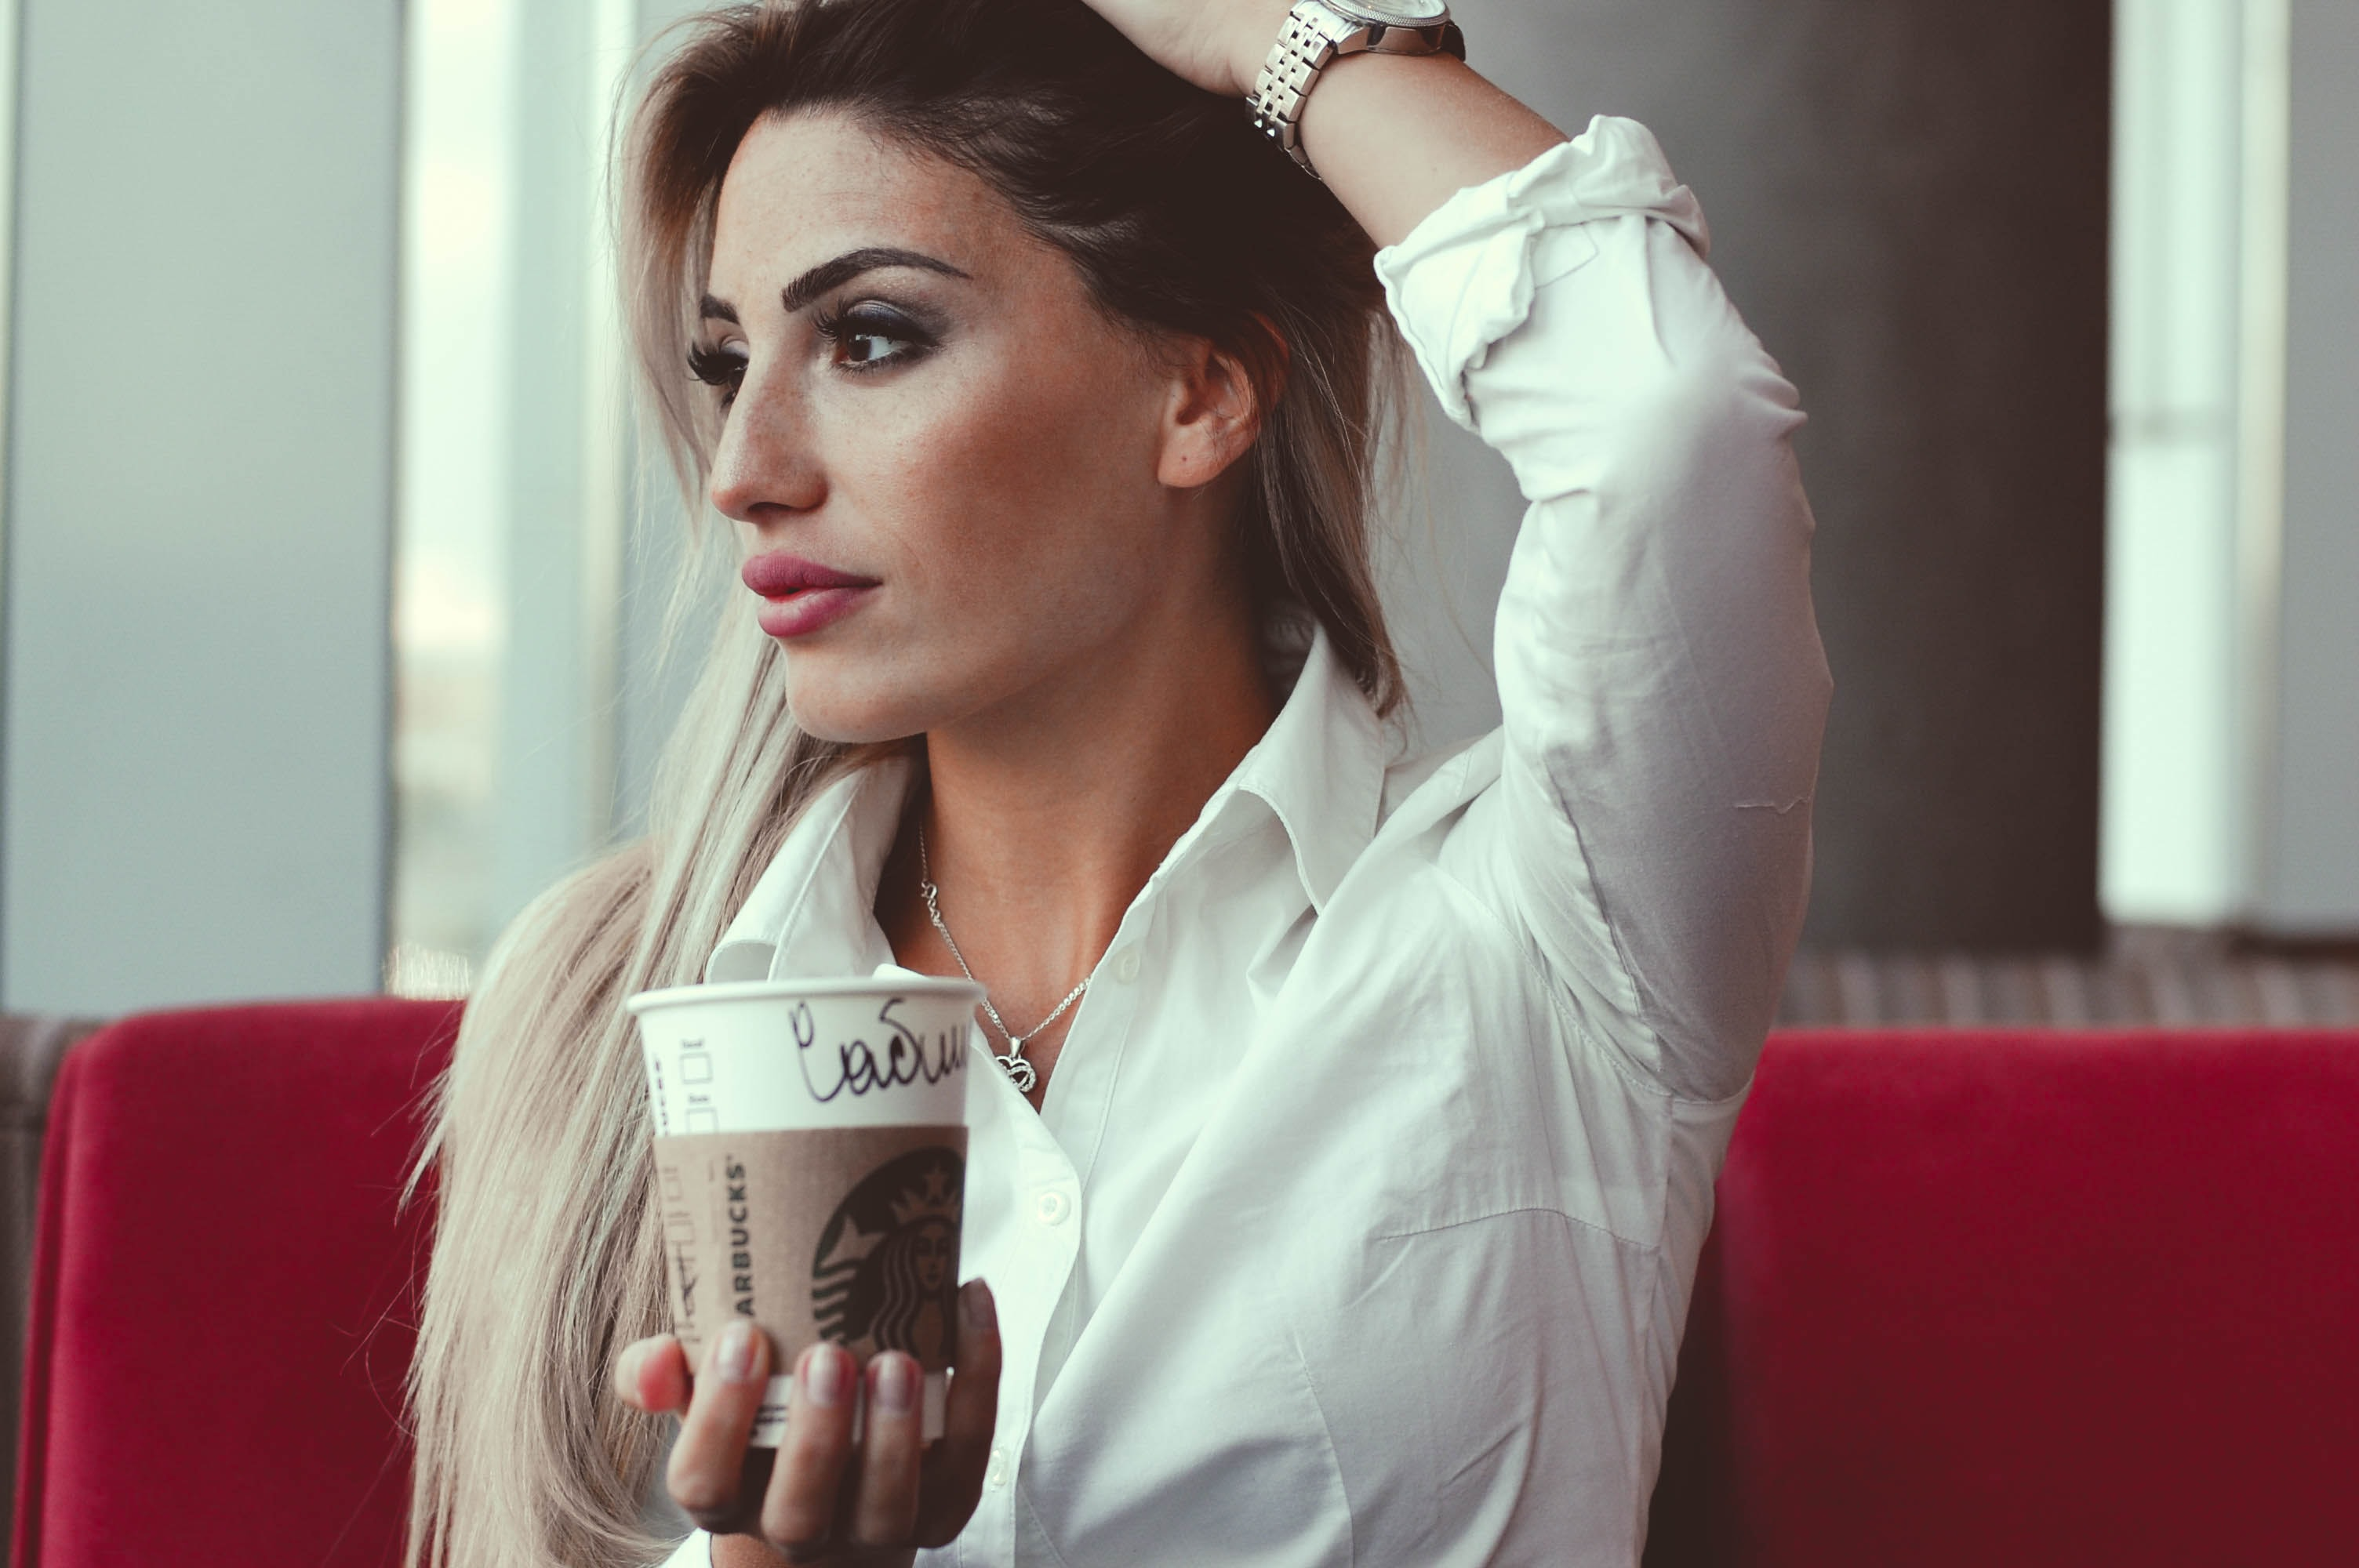 selective focus photo of woman taking post while holding white disposable cup